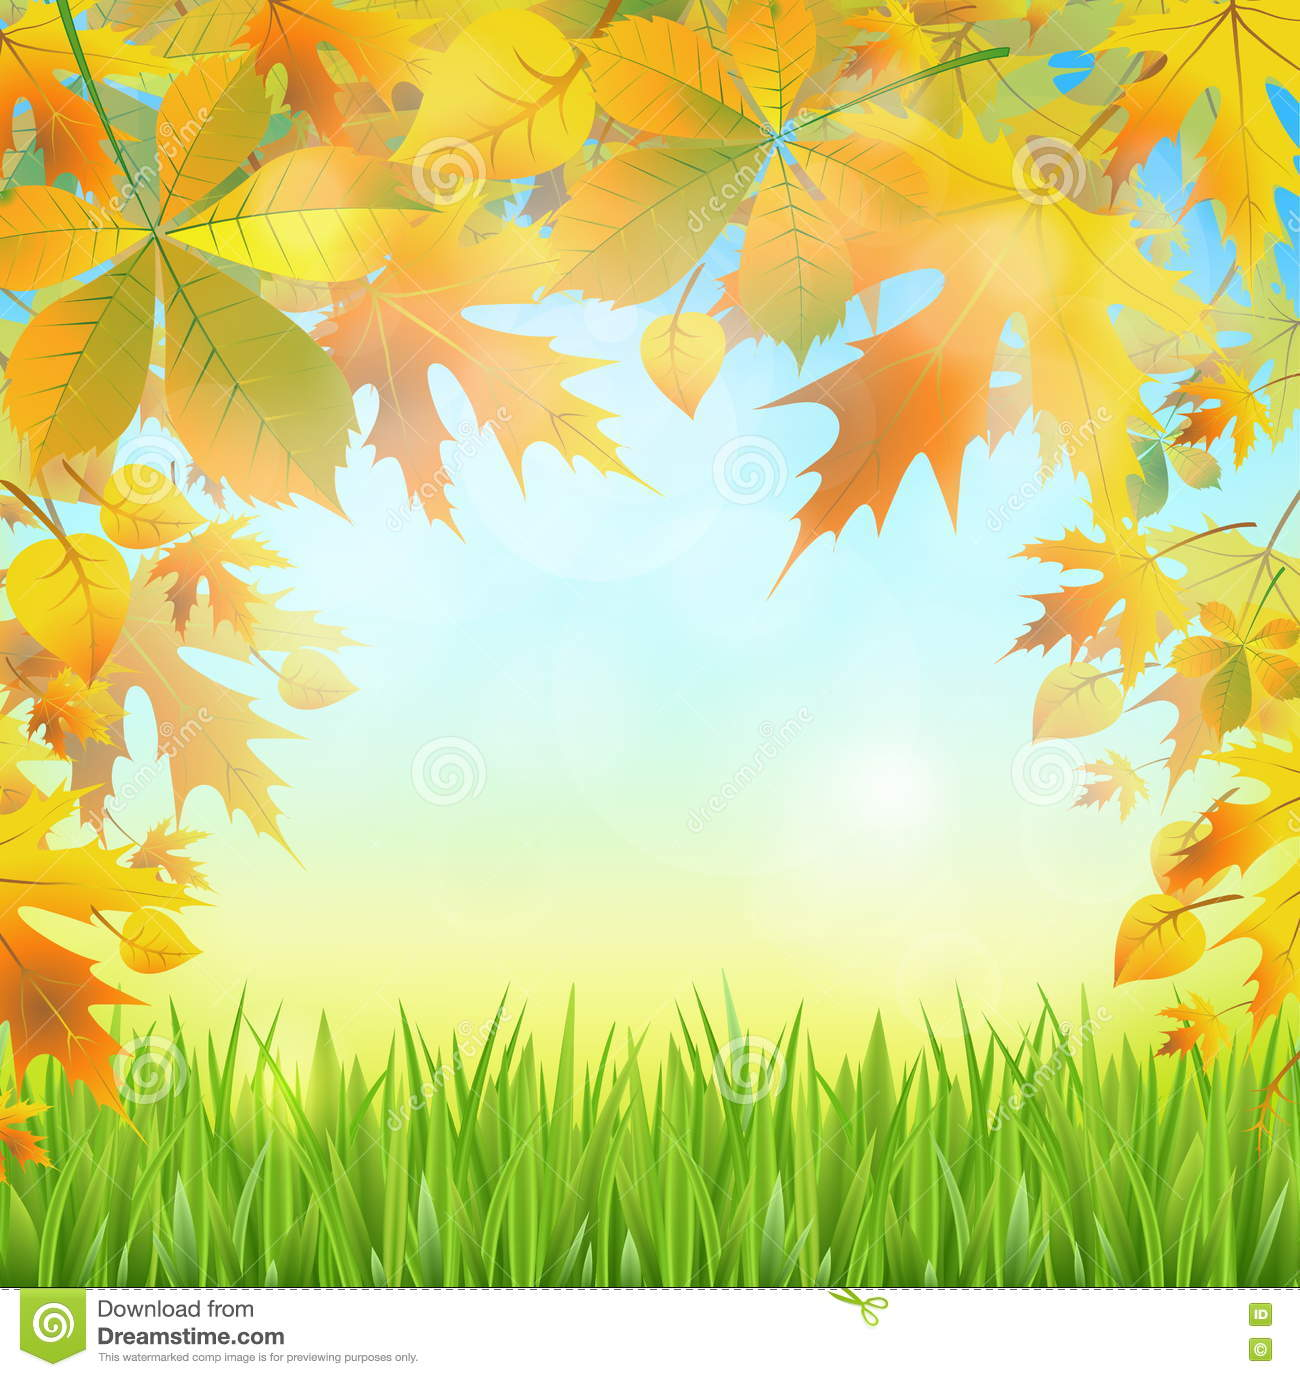 Autumn Leaves On The Abstract Background Of The Nature